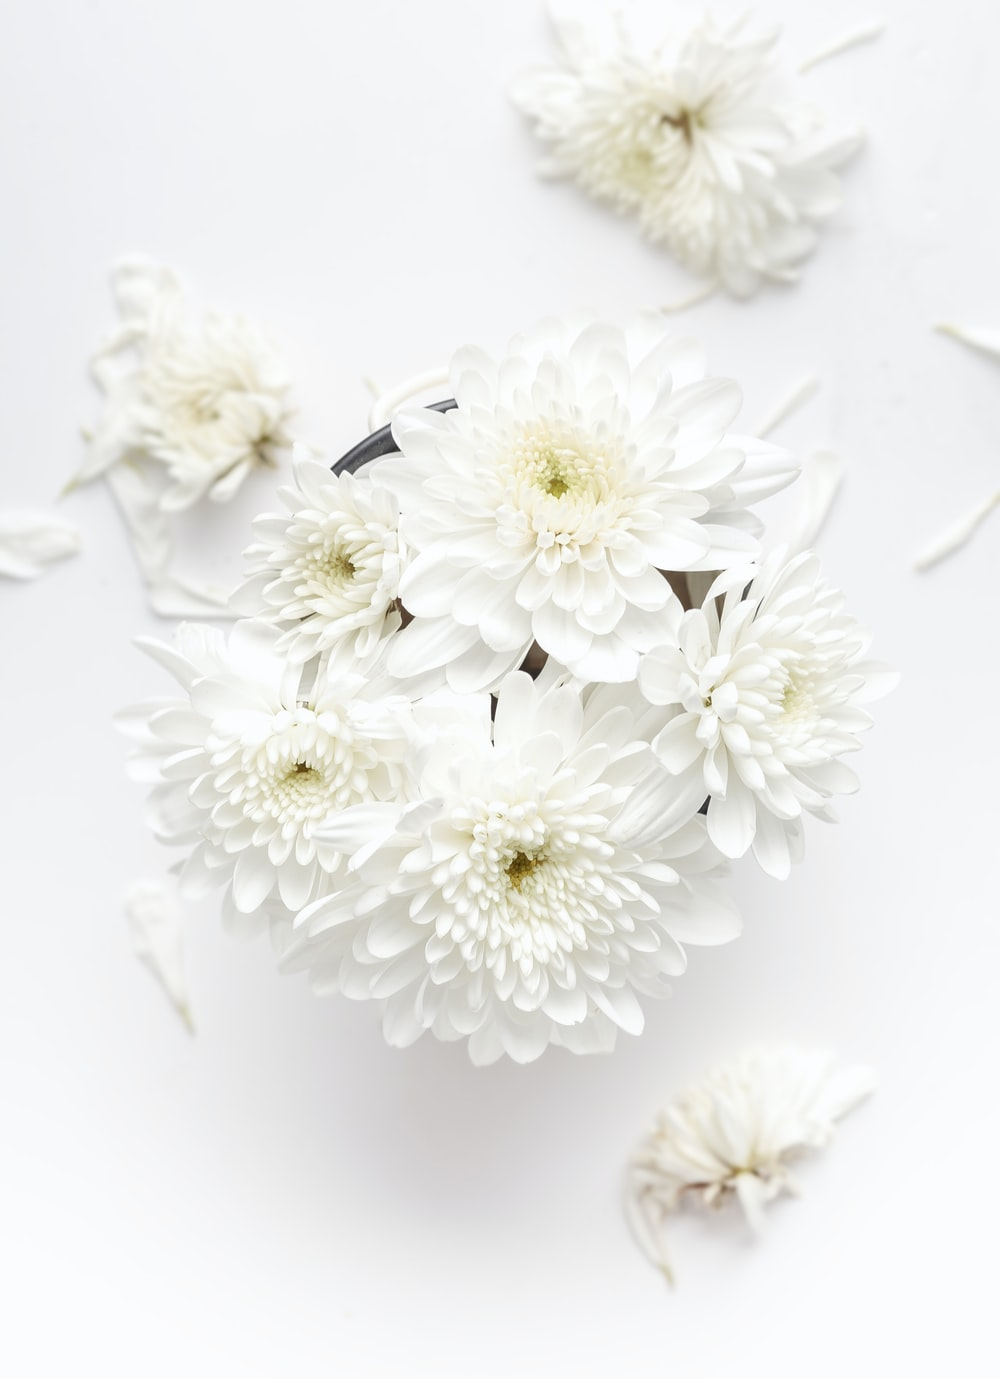 White Flower Still Life Spring And Flower Hd Photo By Elena G